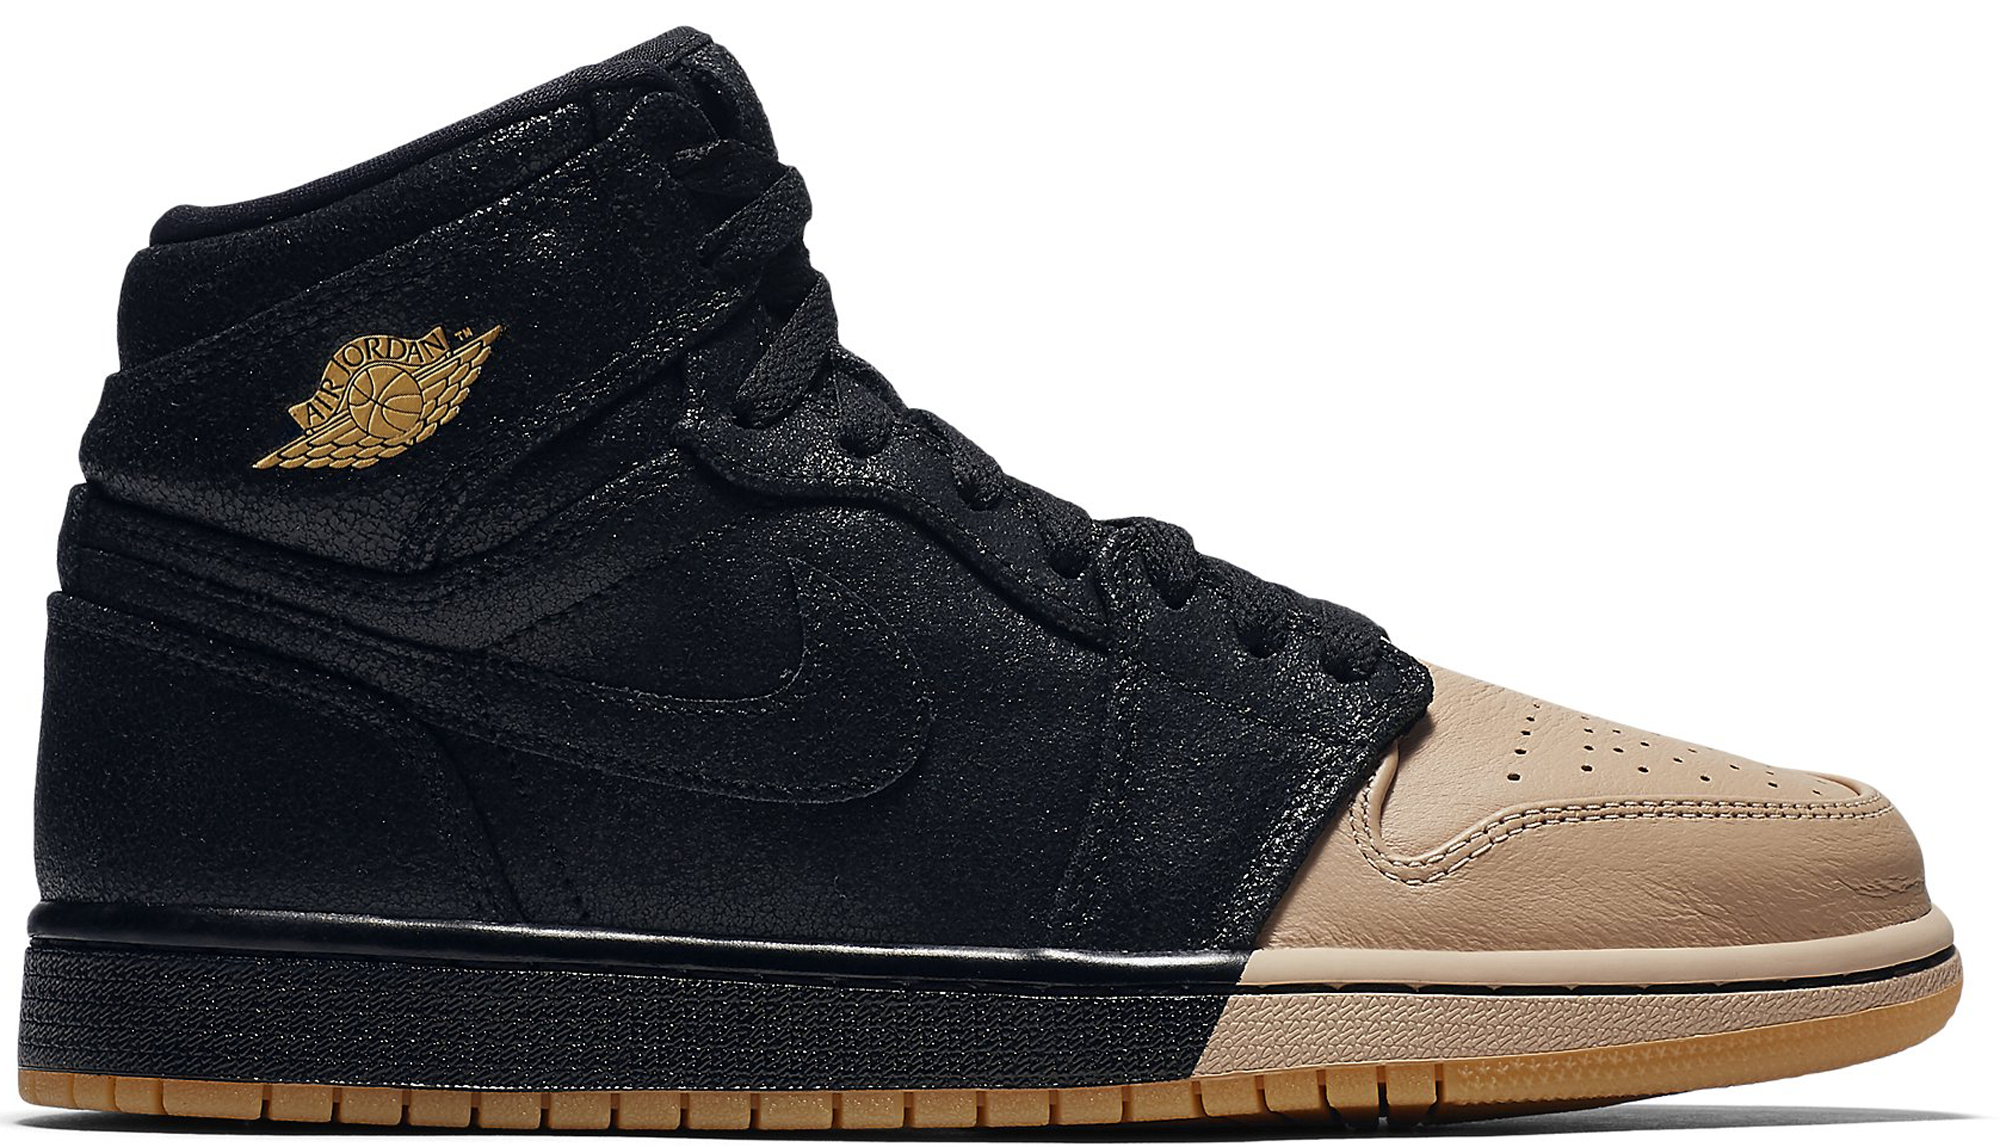 low priced a9134 a3ef3 Women s Air Jordan 1 Retro High Dip-Toe Black Vachetta Tan